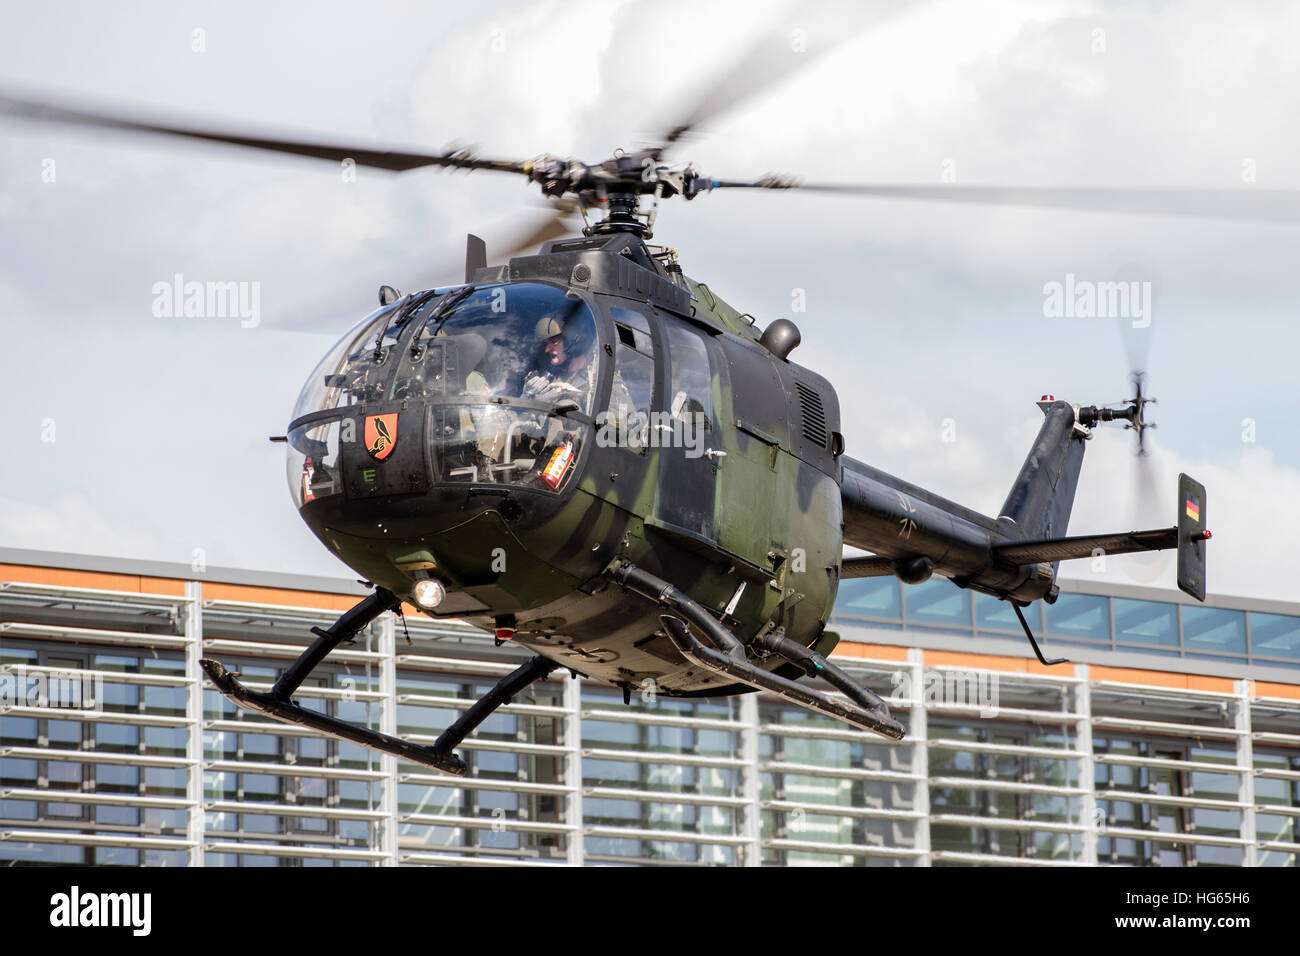 A Bo-105 liasion helicopter of the German Army in Dresden, Germany. - Stock Image